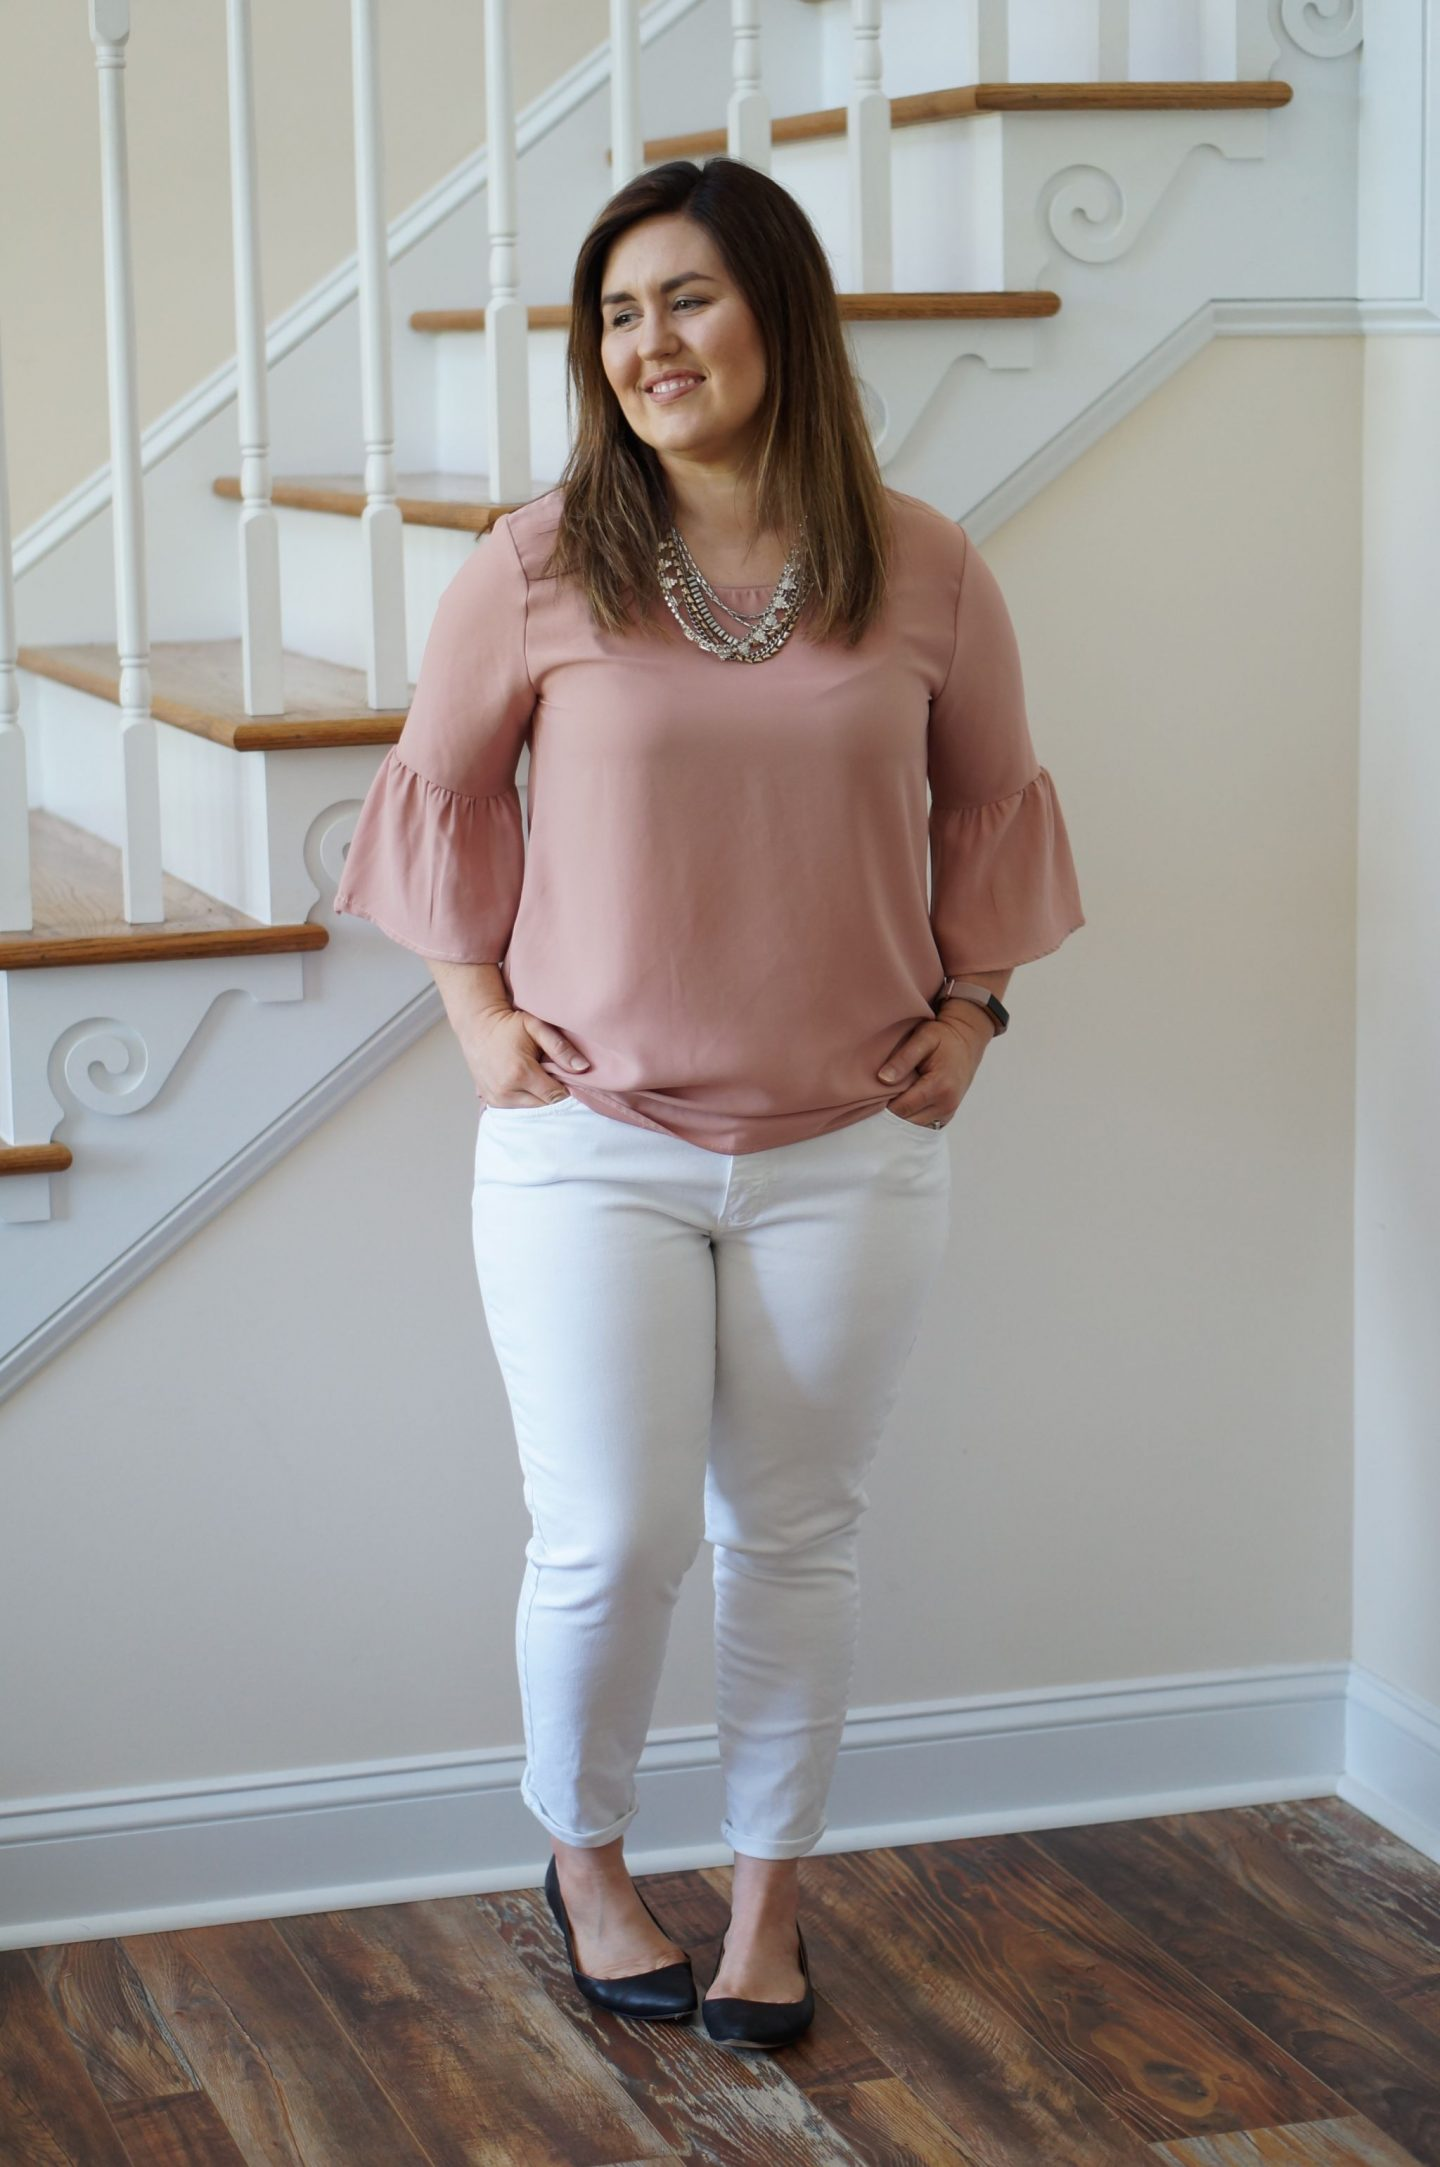 Jeans are some of the most versatile pieces in my wardrobe. I love dressing up jeans, and I have some office appropriate inspiration for you!